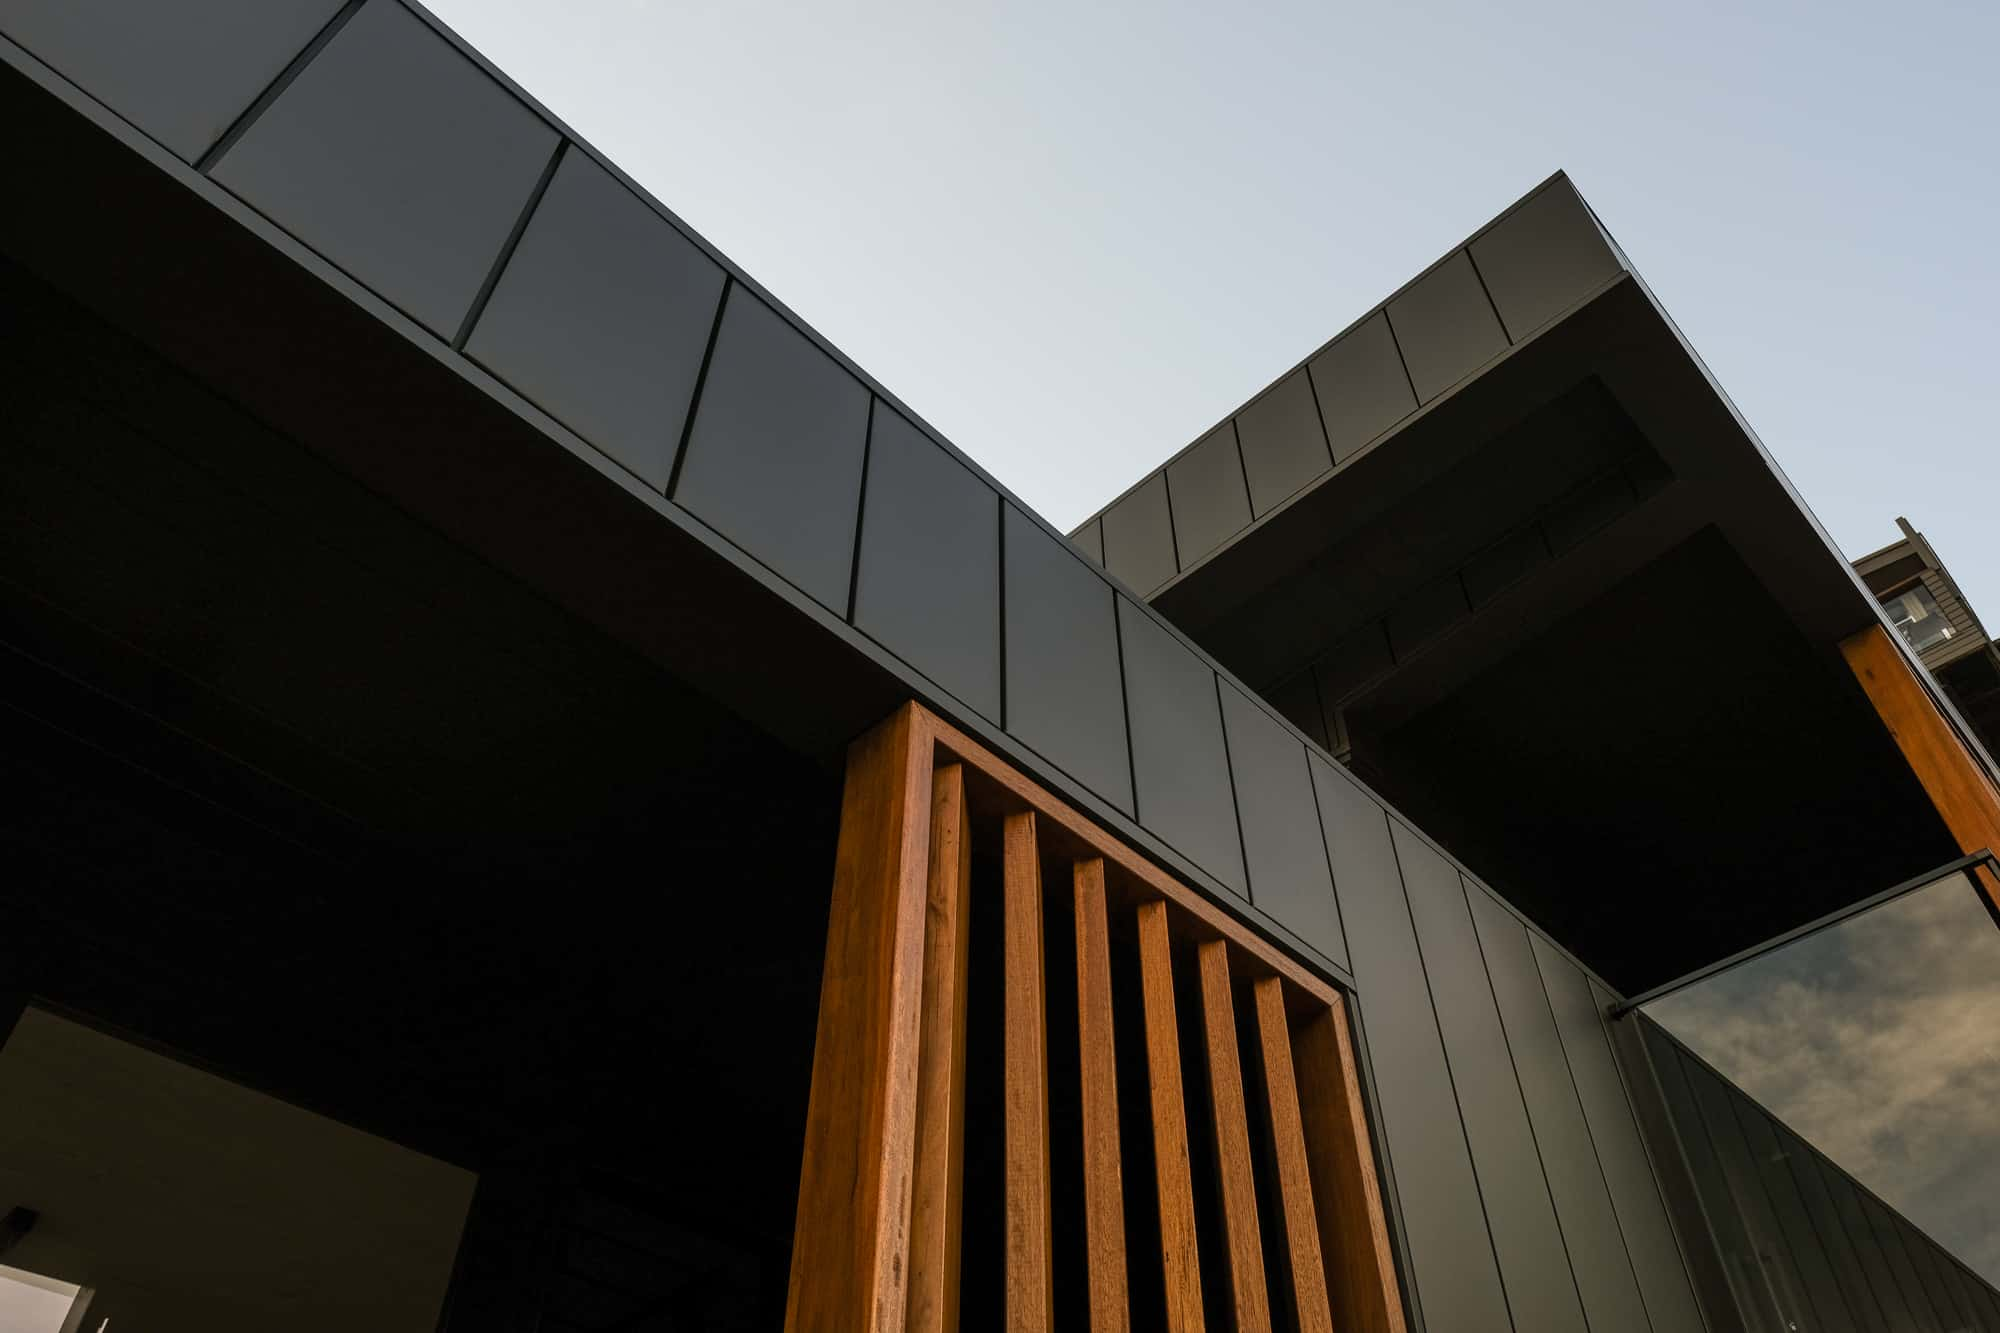 Interlocking Panels On Seaforth Property Compliments The Wood Perfectly